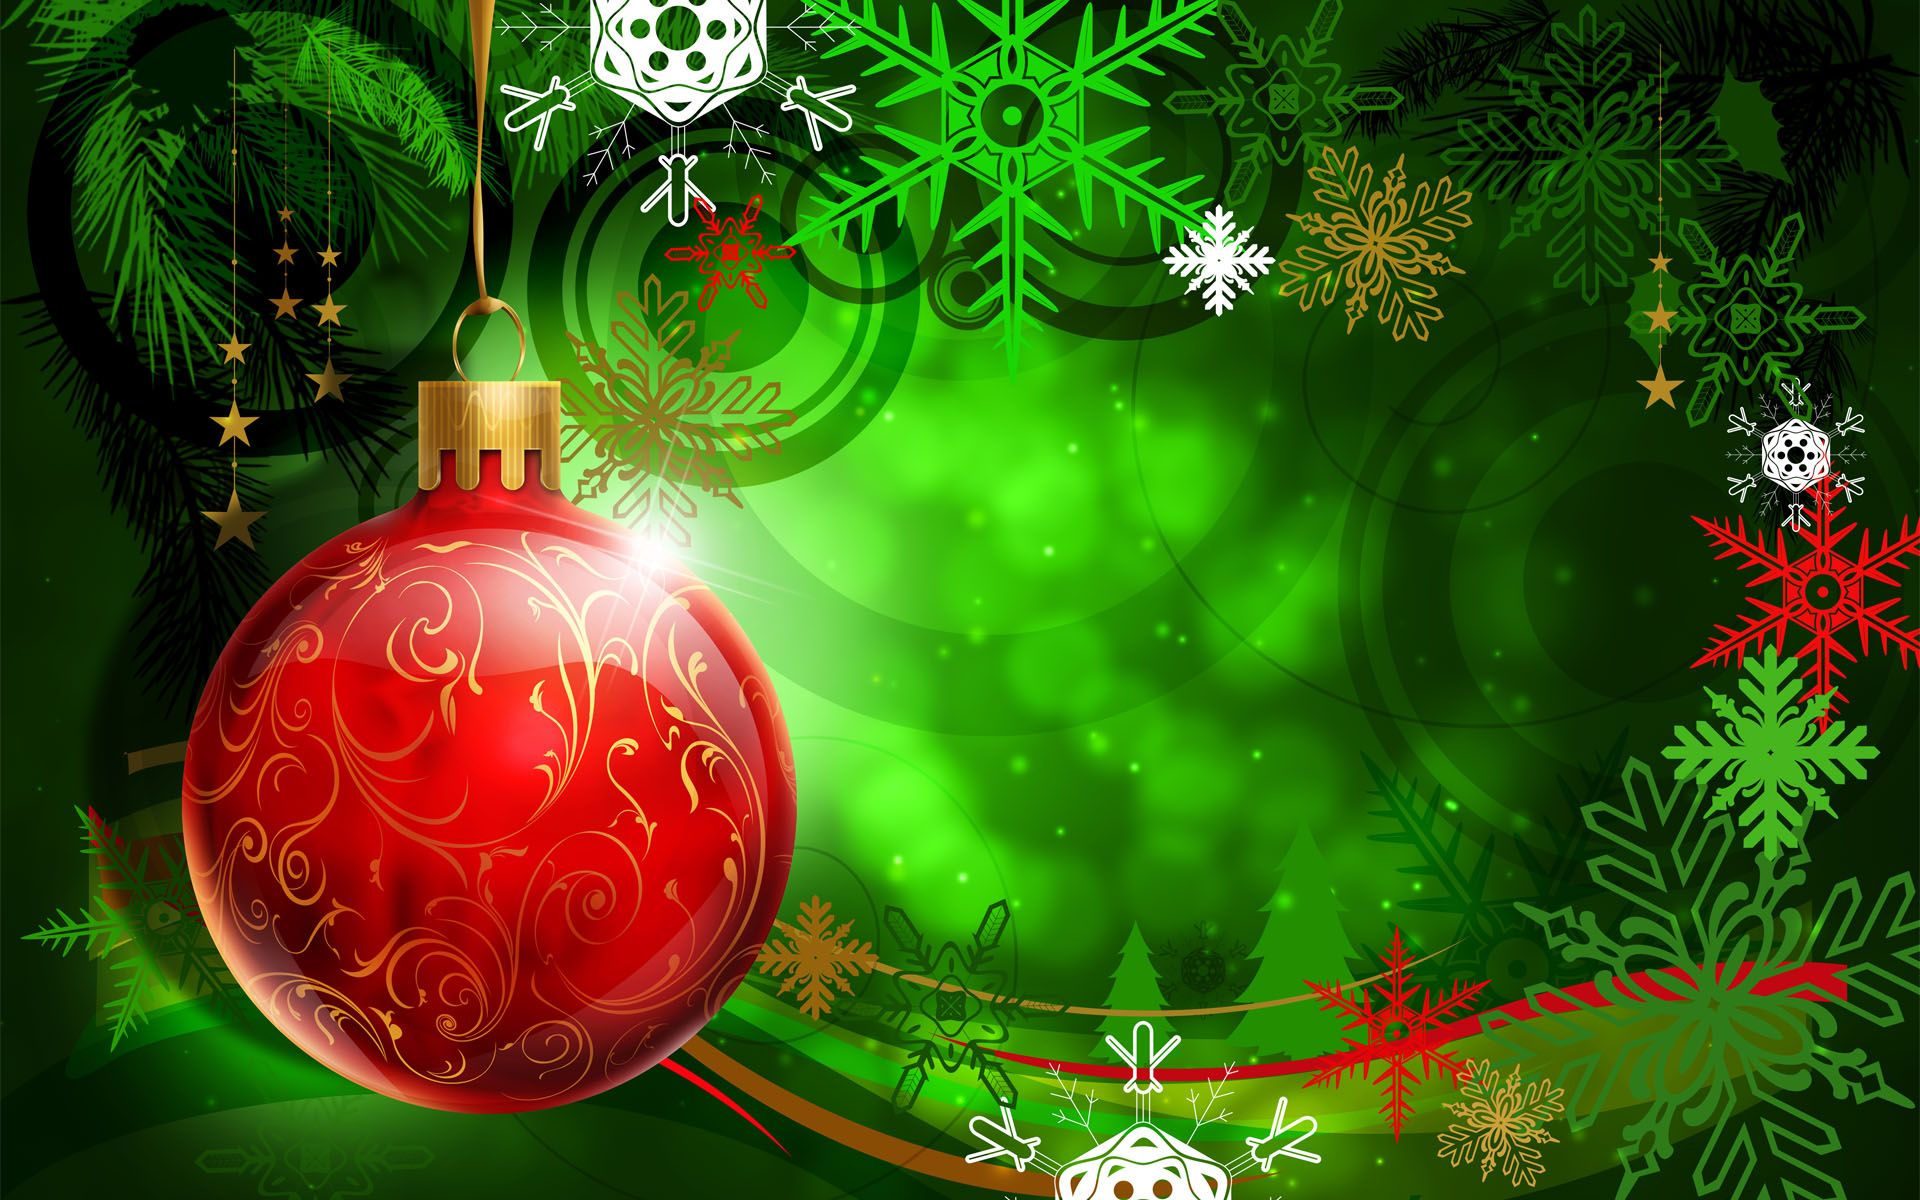 christmas wallpaper for desktop christmas new year wallpaper 147 free desktop wallpapers cool